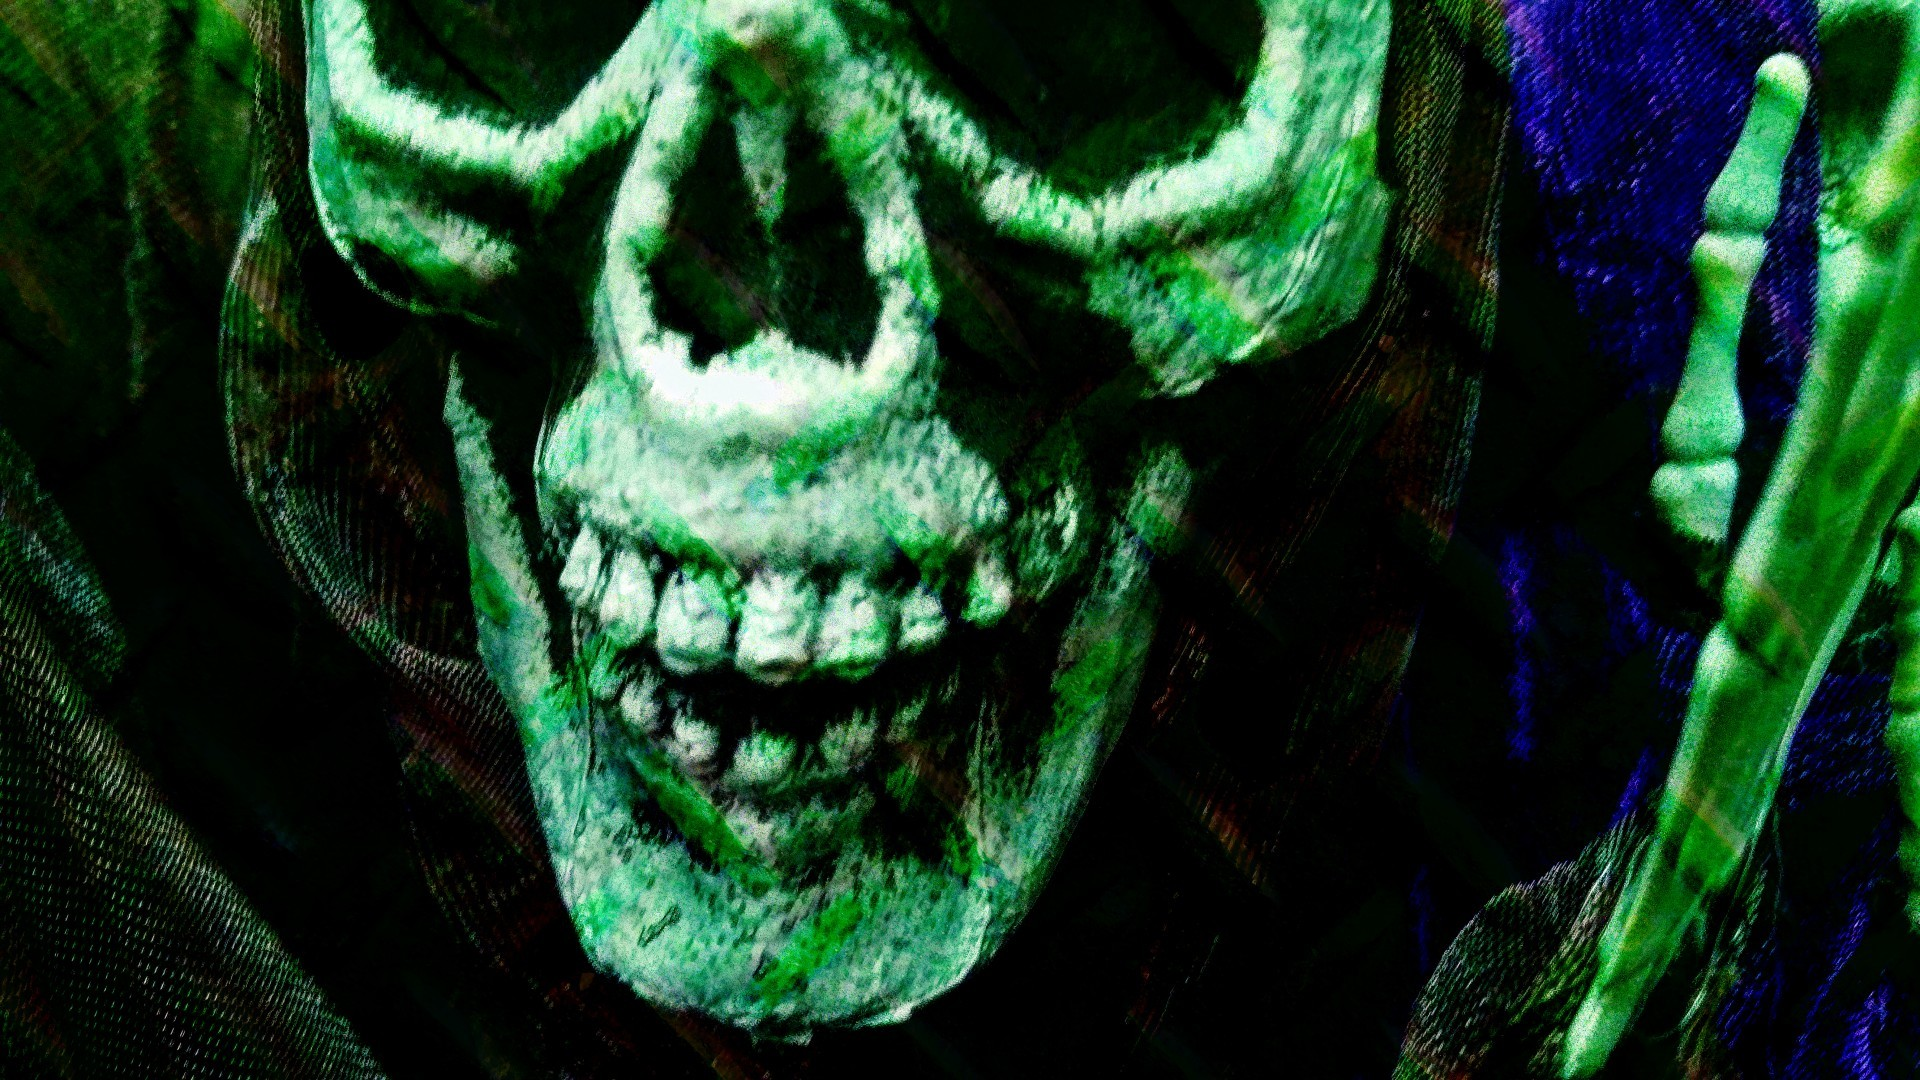 Weed Iphone 5 Wallpaper Green Skull Wallpaper 53 Images